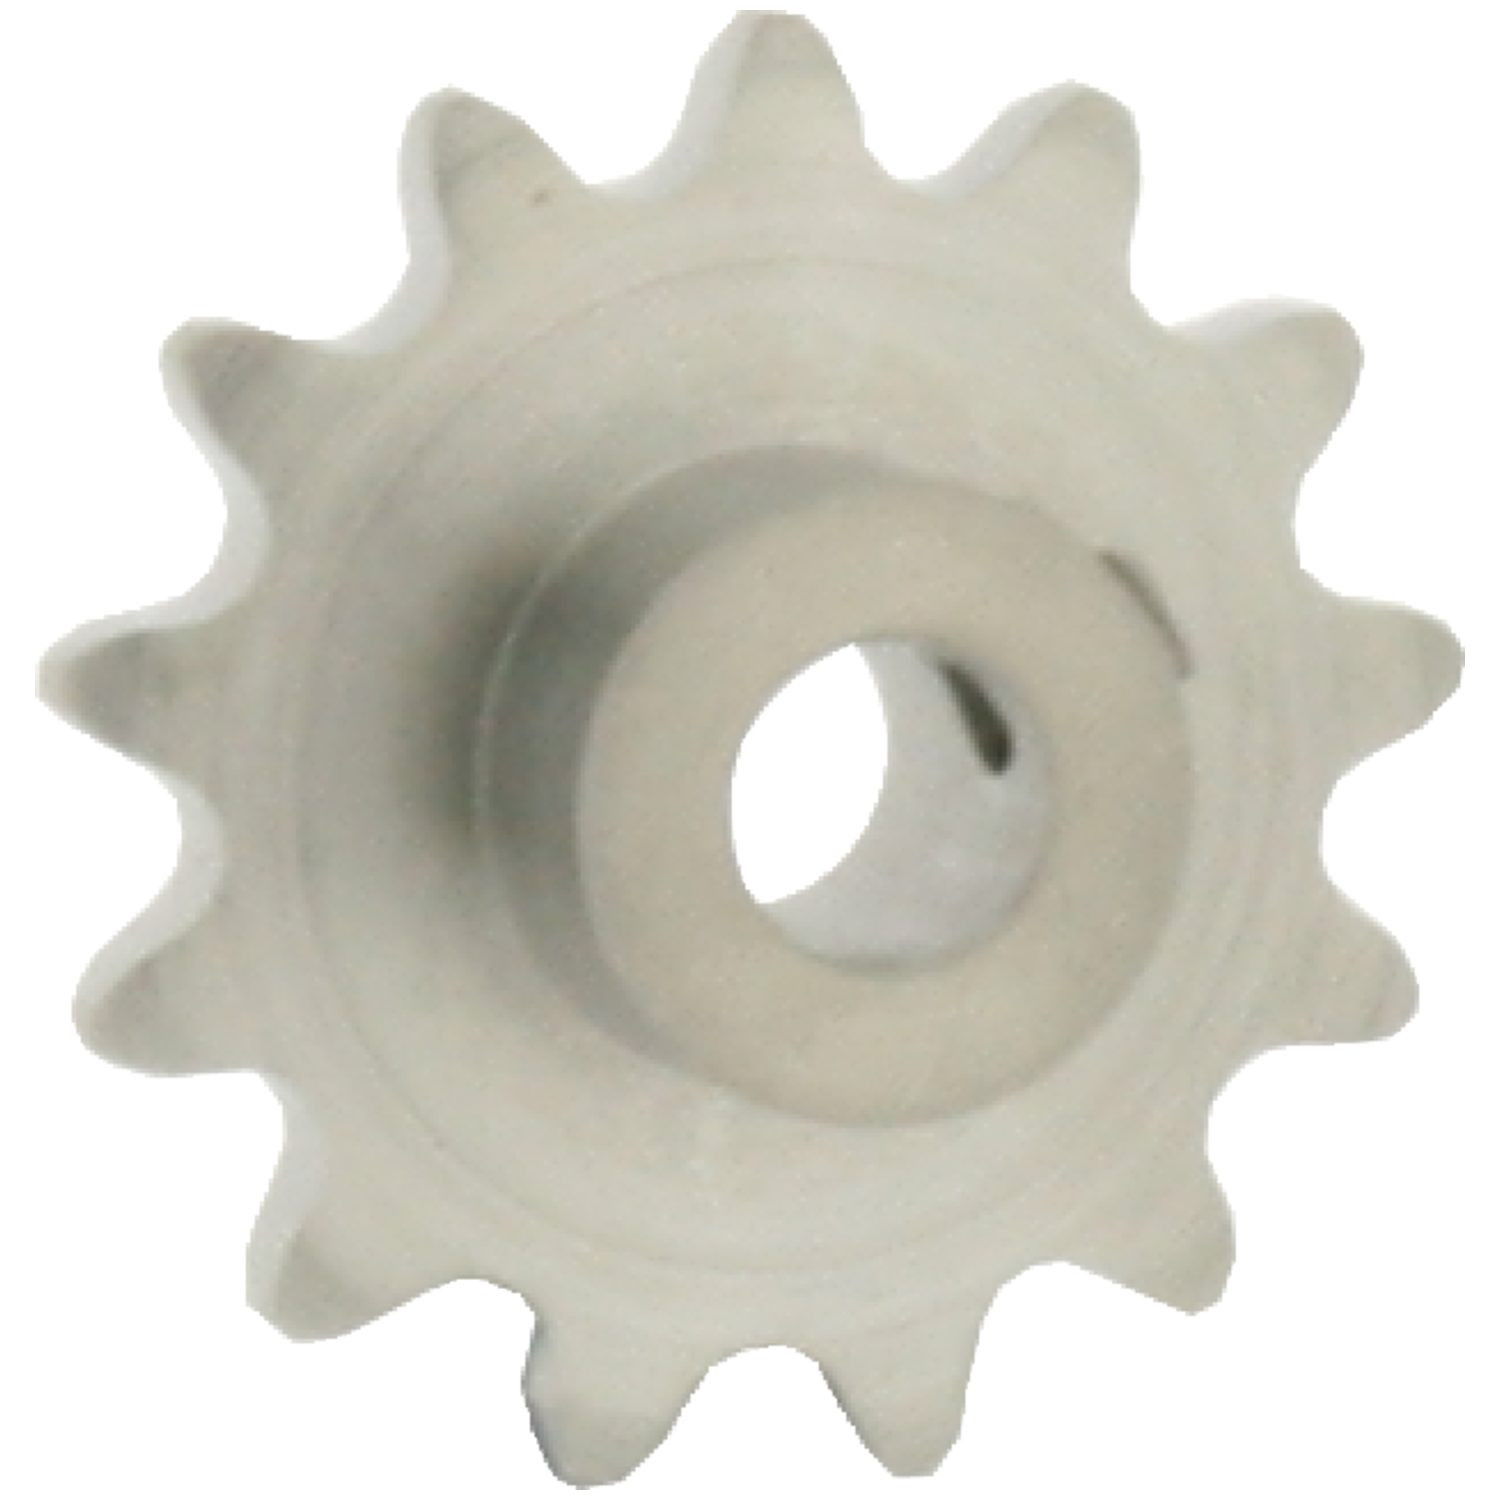 R1300.1 - Sprockets - acetal, pin hub